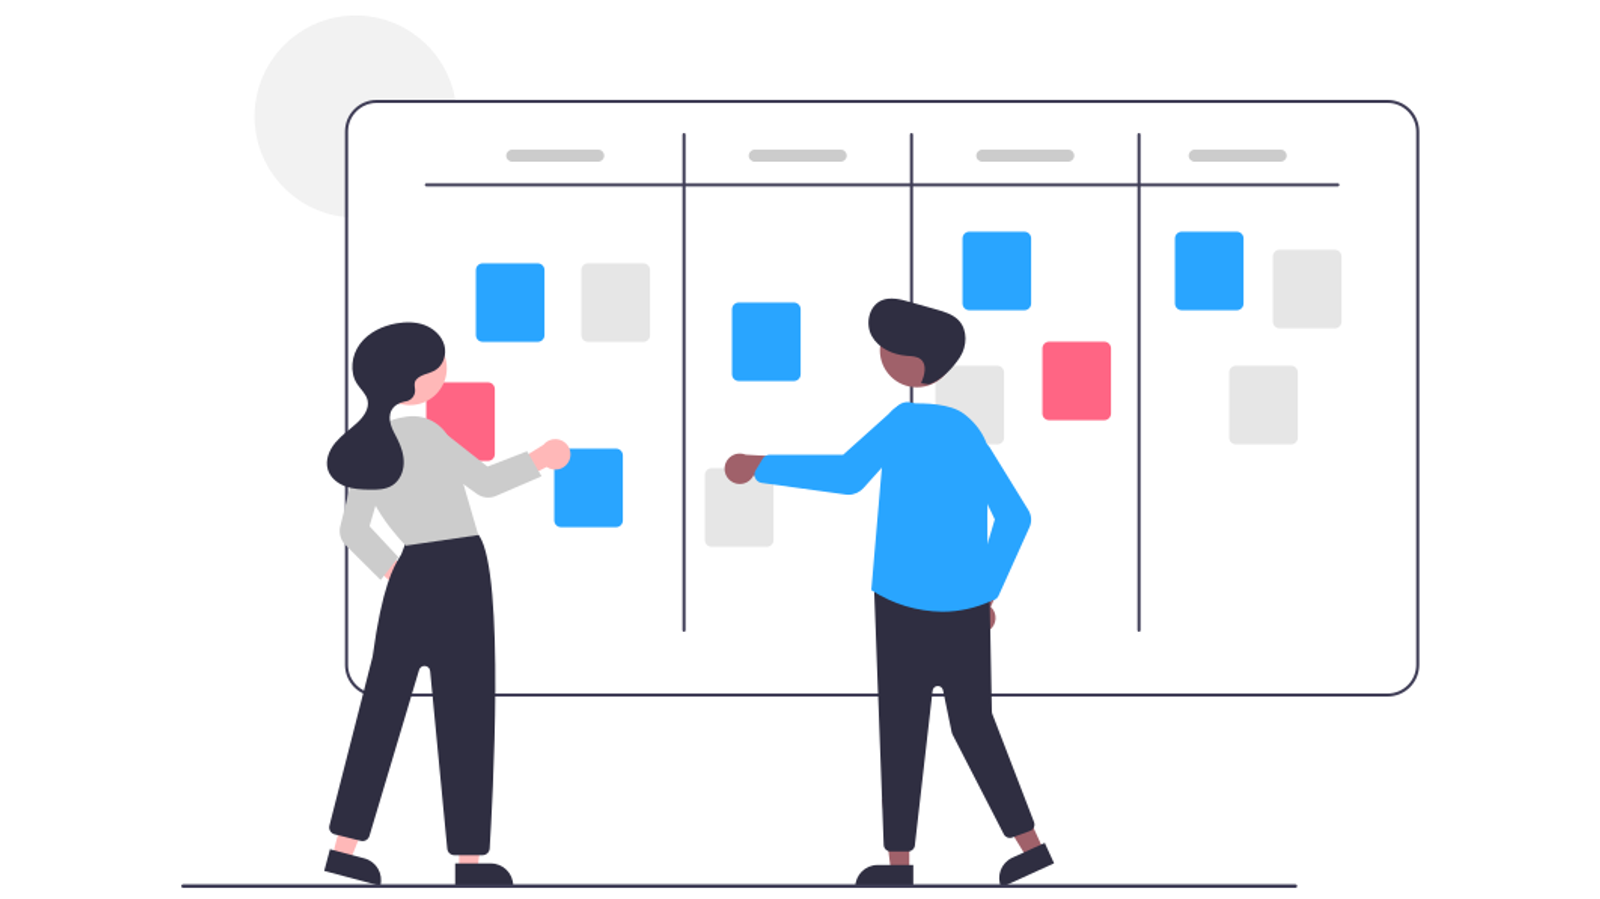 Product roadmap prioritization